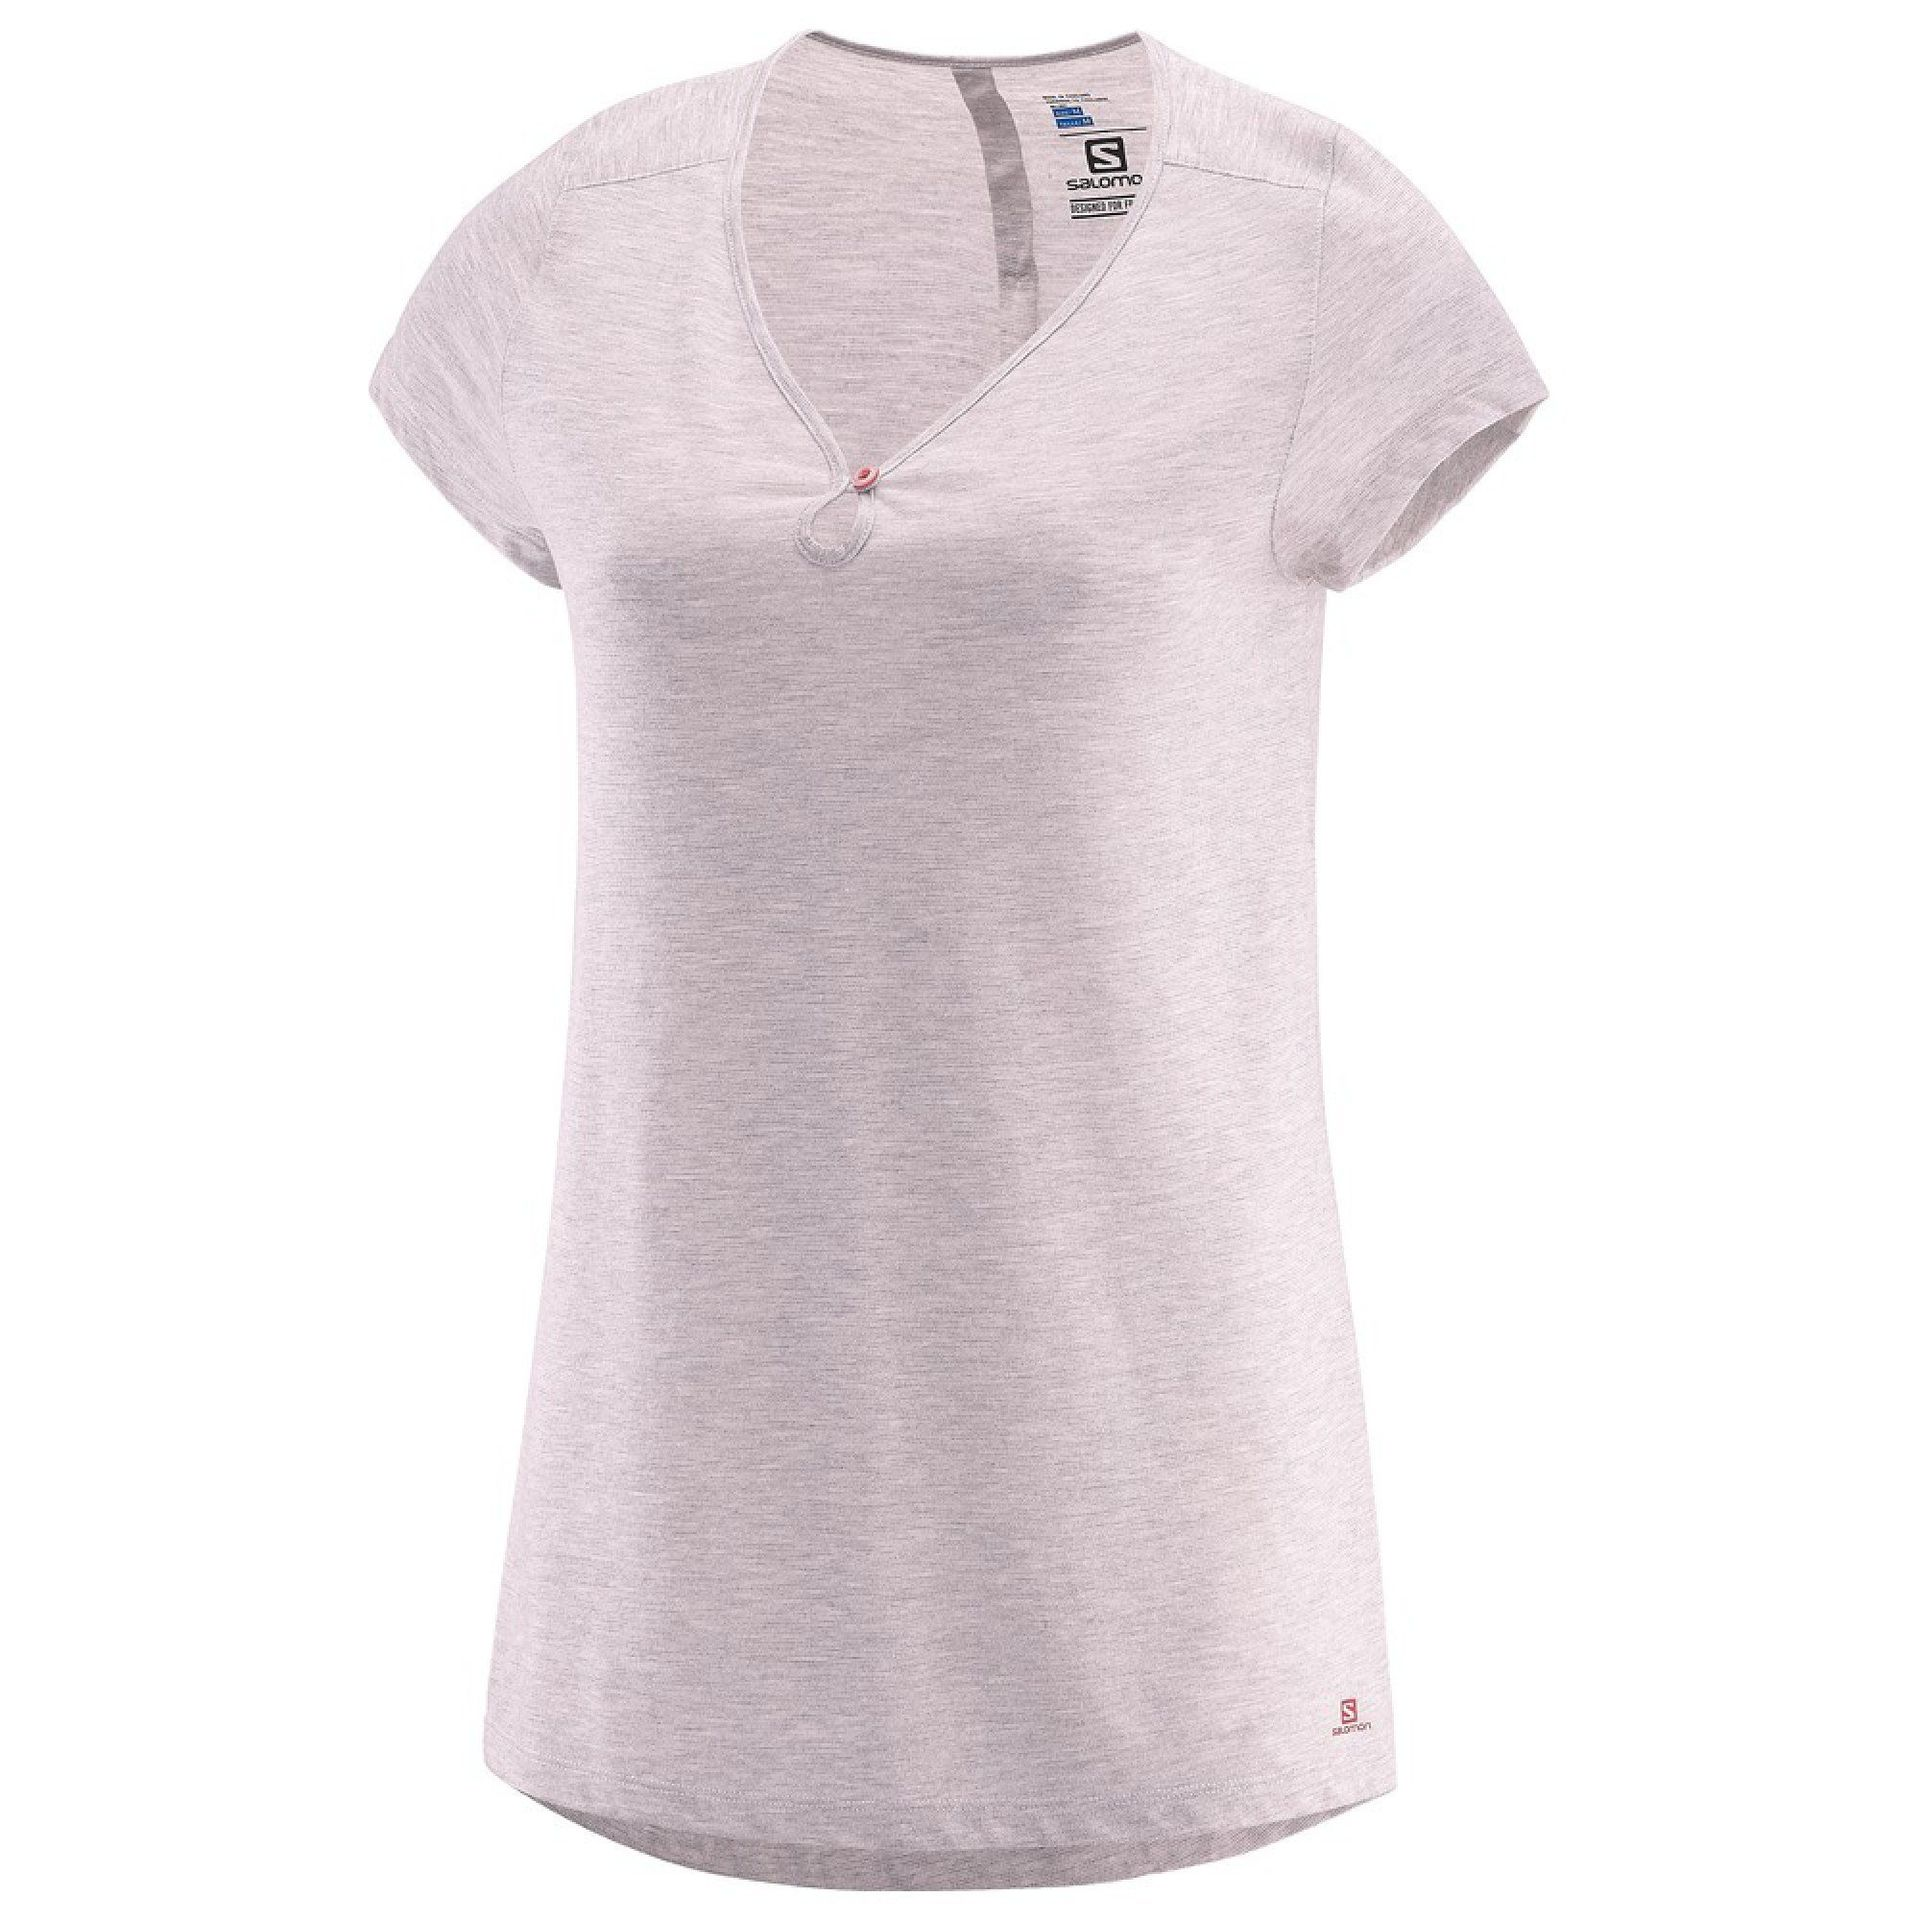 T-SHIRT SALOMON ELLIPSE SCOOP PINK DOGWOOD